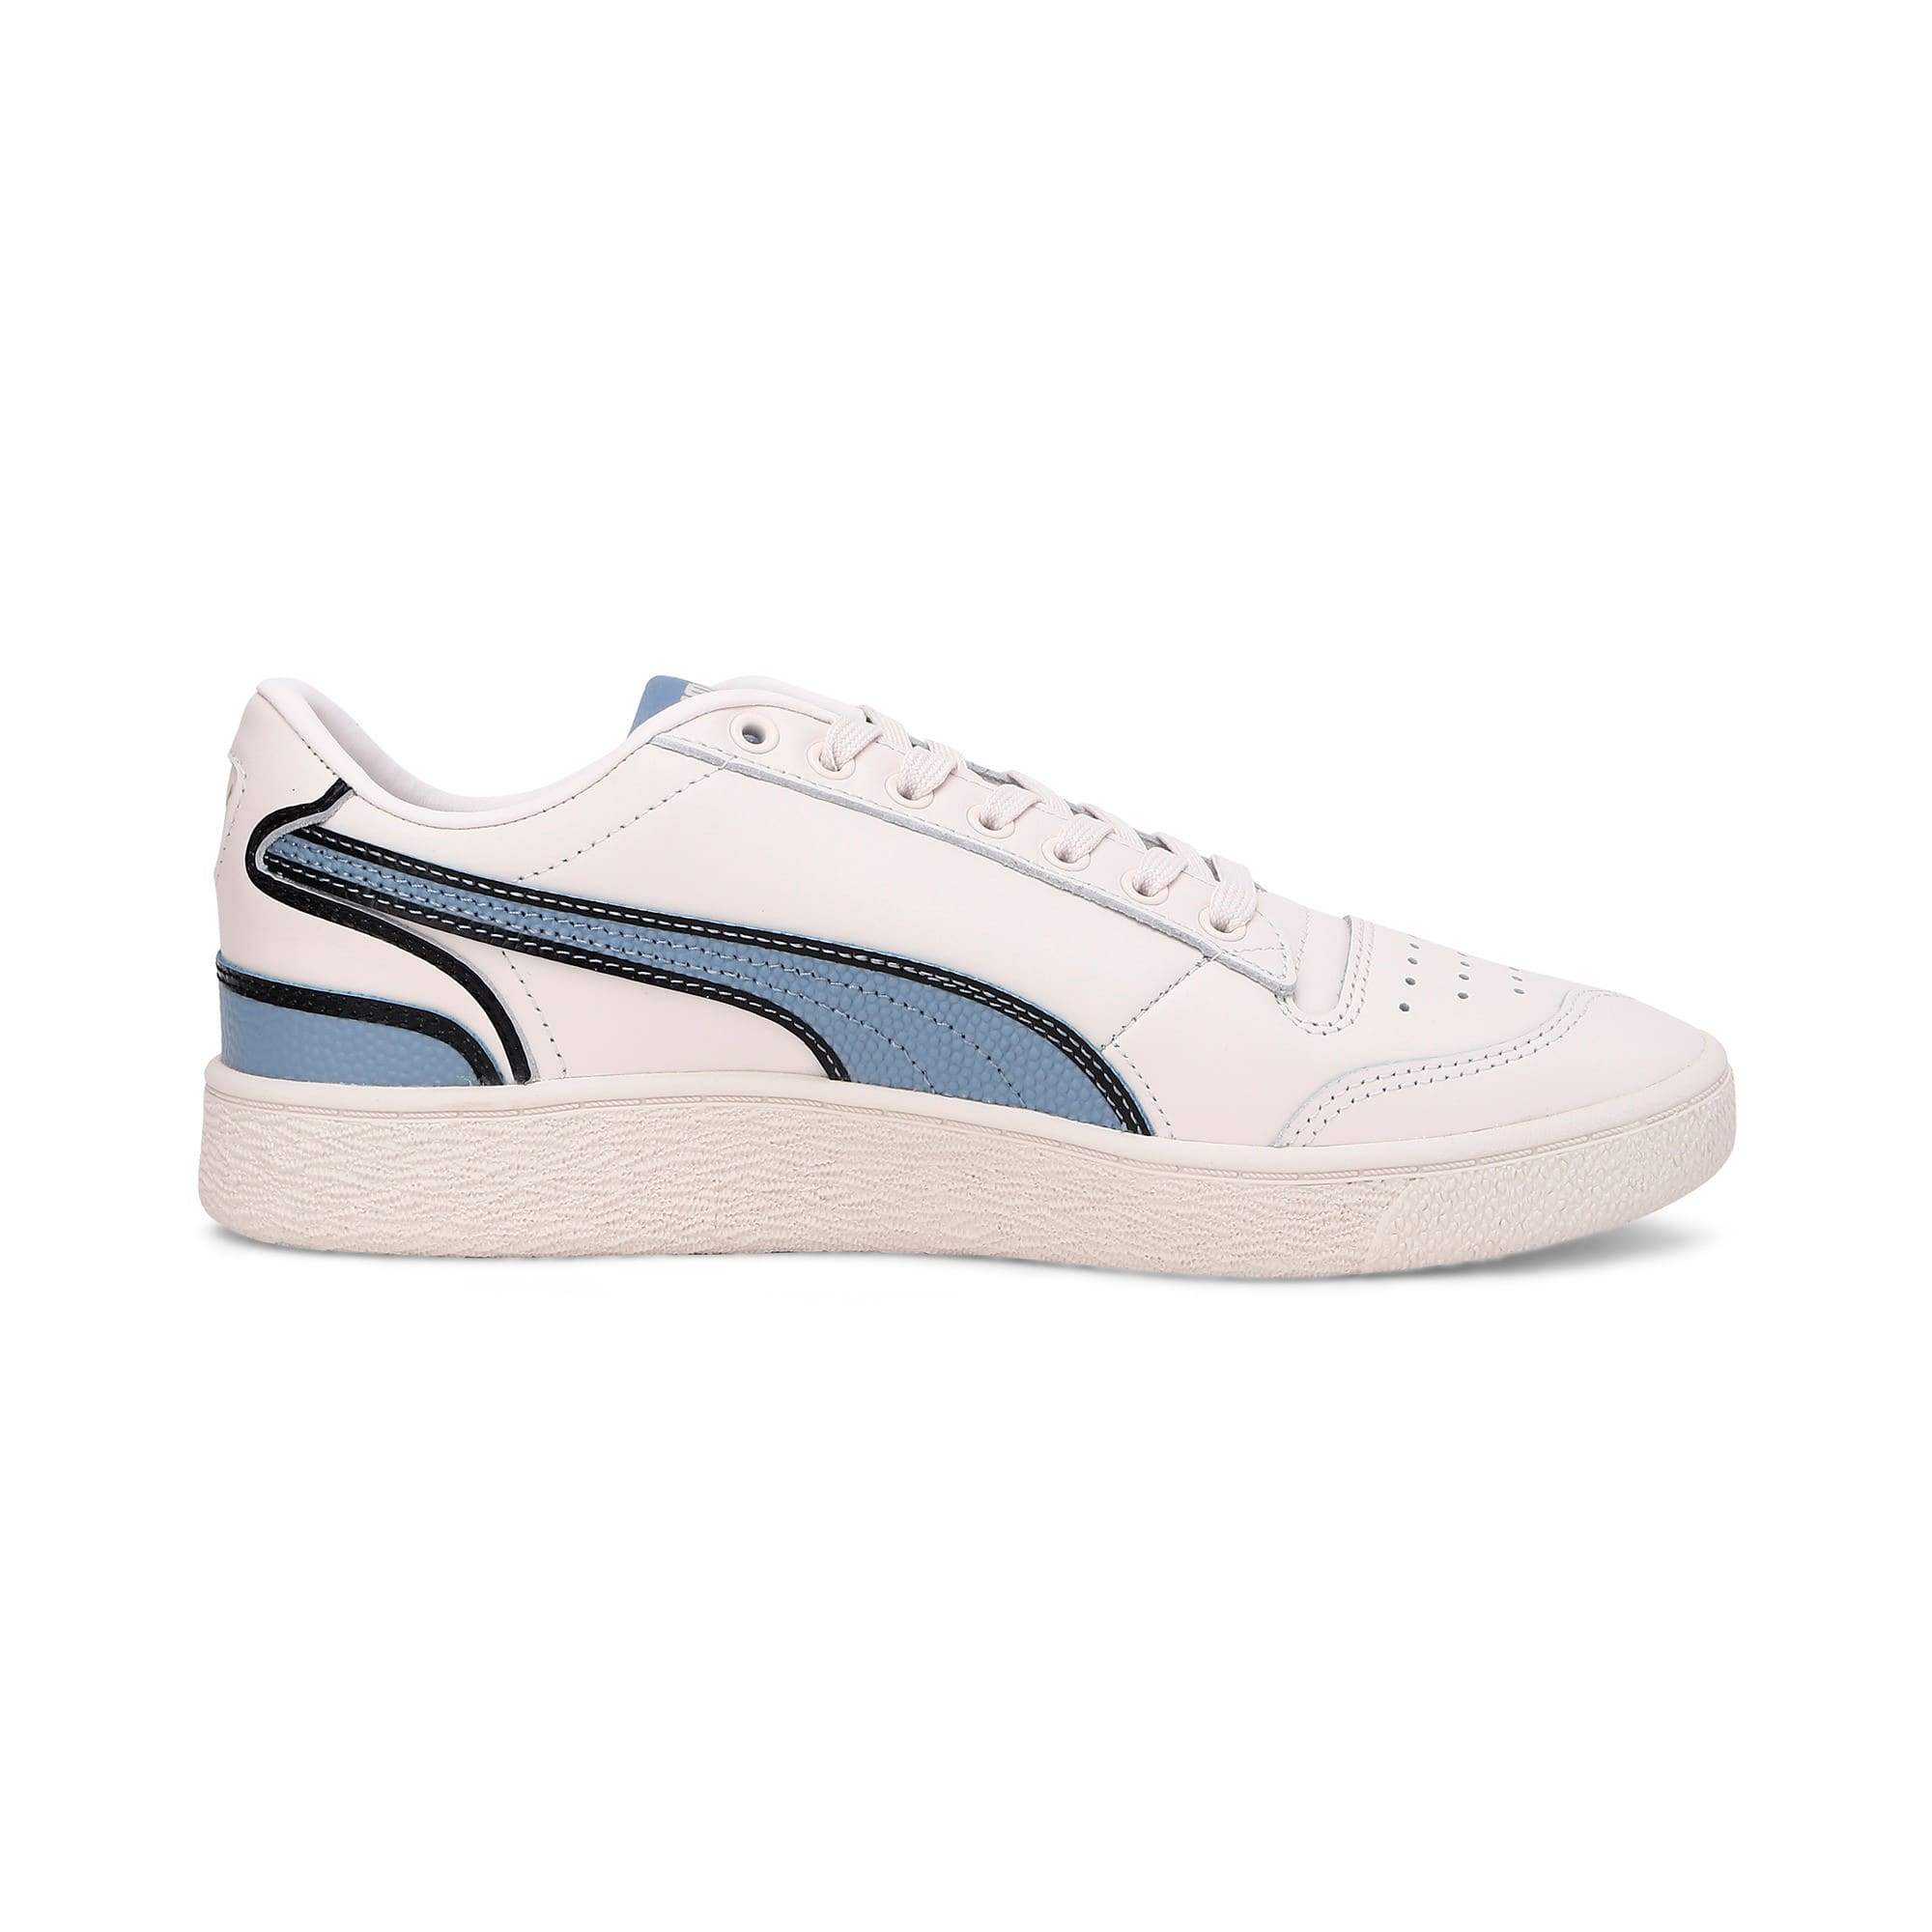 Thumbnail 7 of Ralph Sampson Lo Hoops Trainers, Pastel-Faded Denim-Pastel, medium-IND